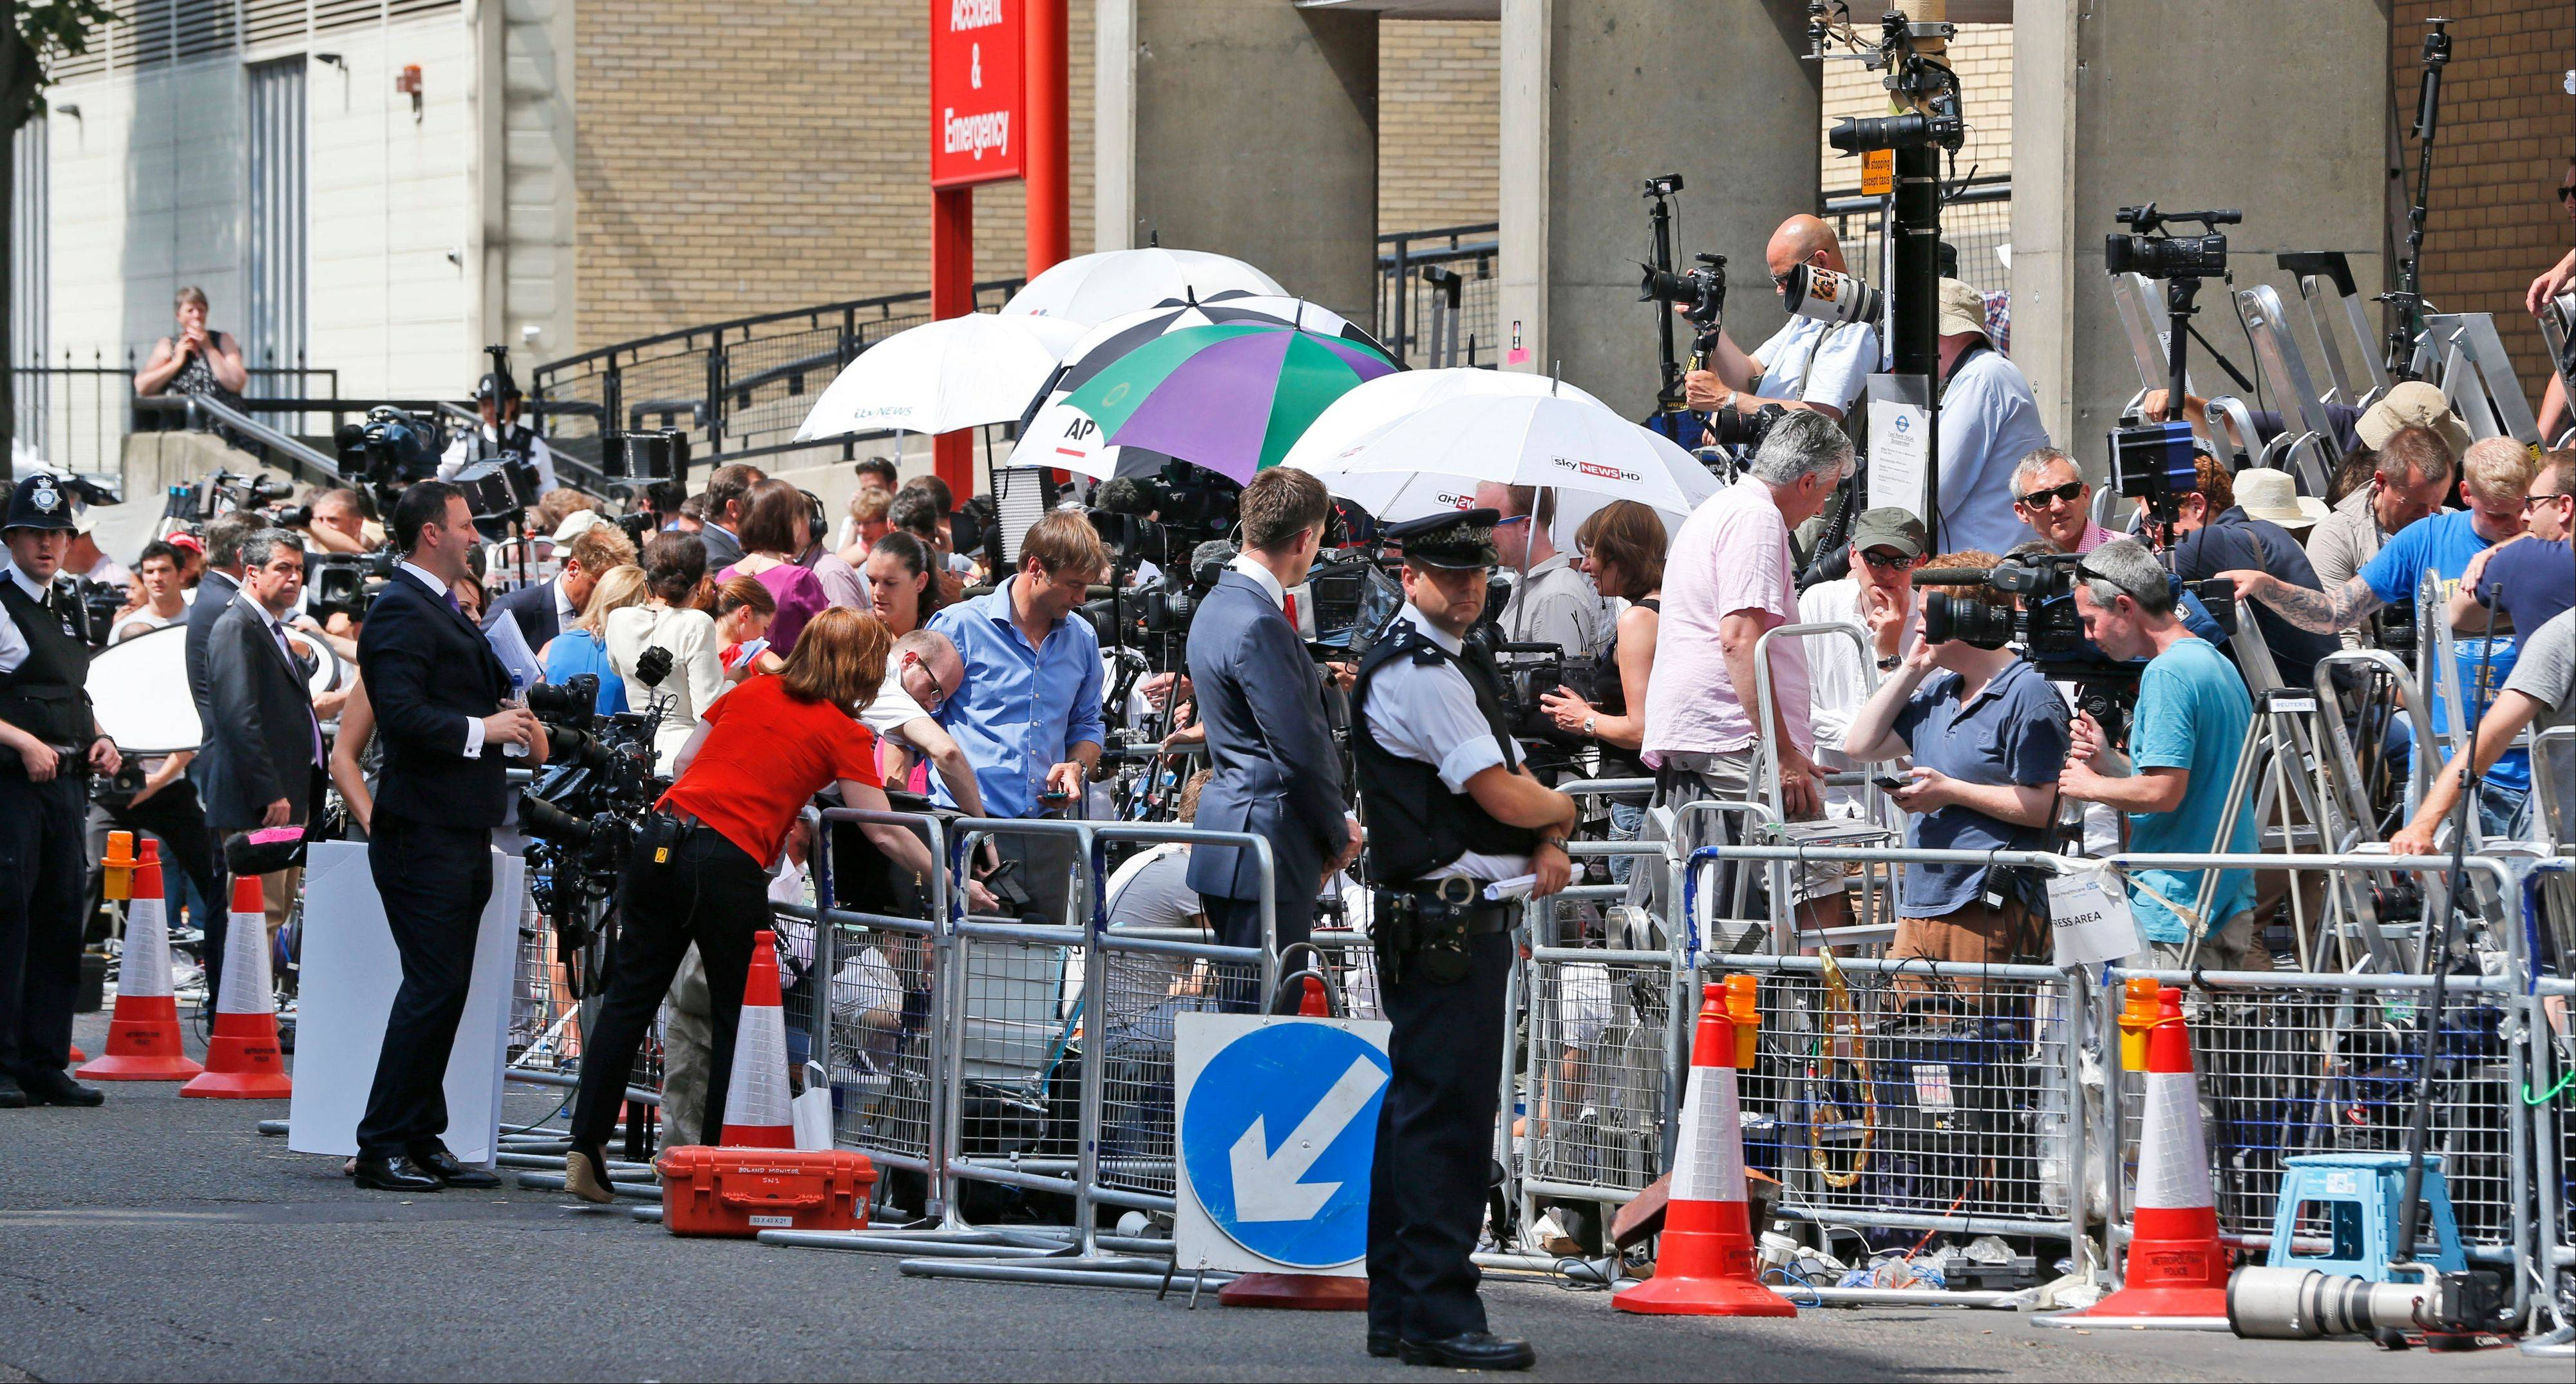 A British police officer, backdropped by members of the media, stands outside St. Mary�s Hospital exclusive Lindo Wing in London, Monday.